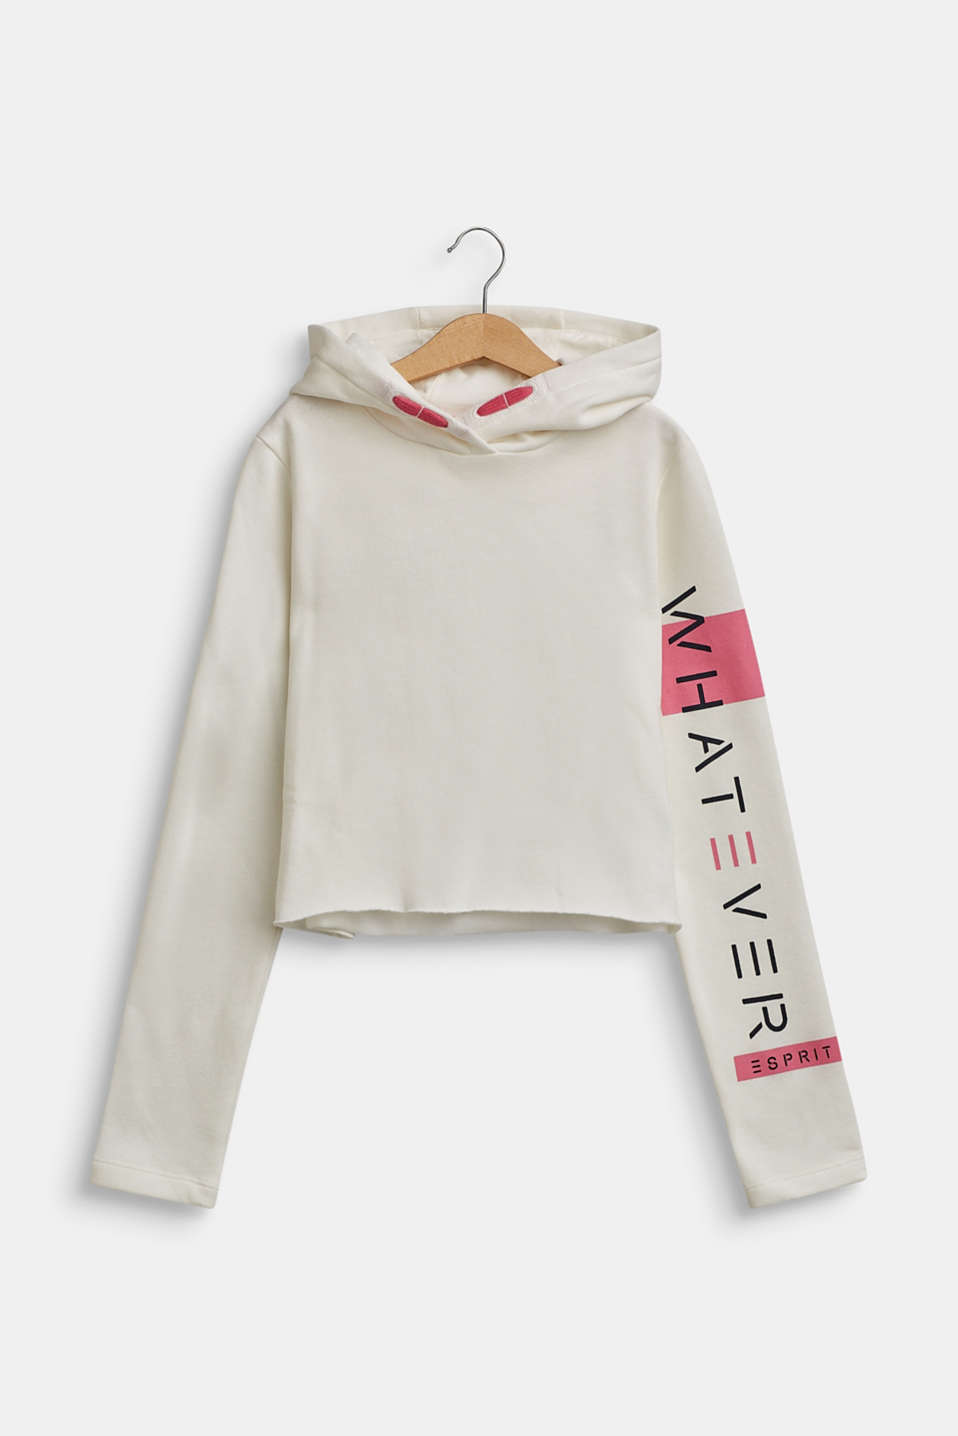 Esprit Hoodie with a statement print at our Online Shop